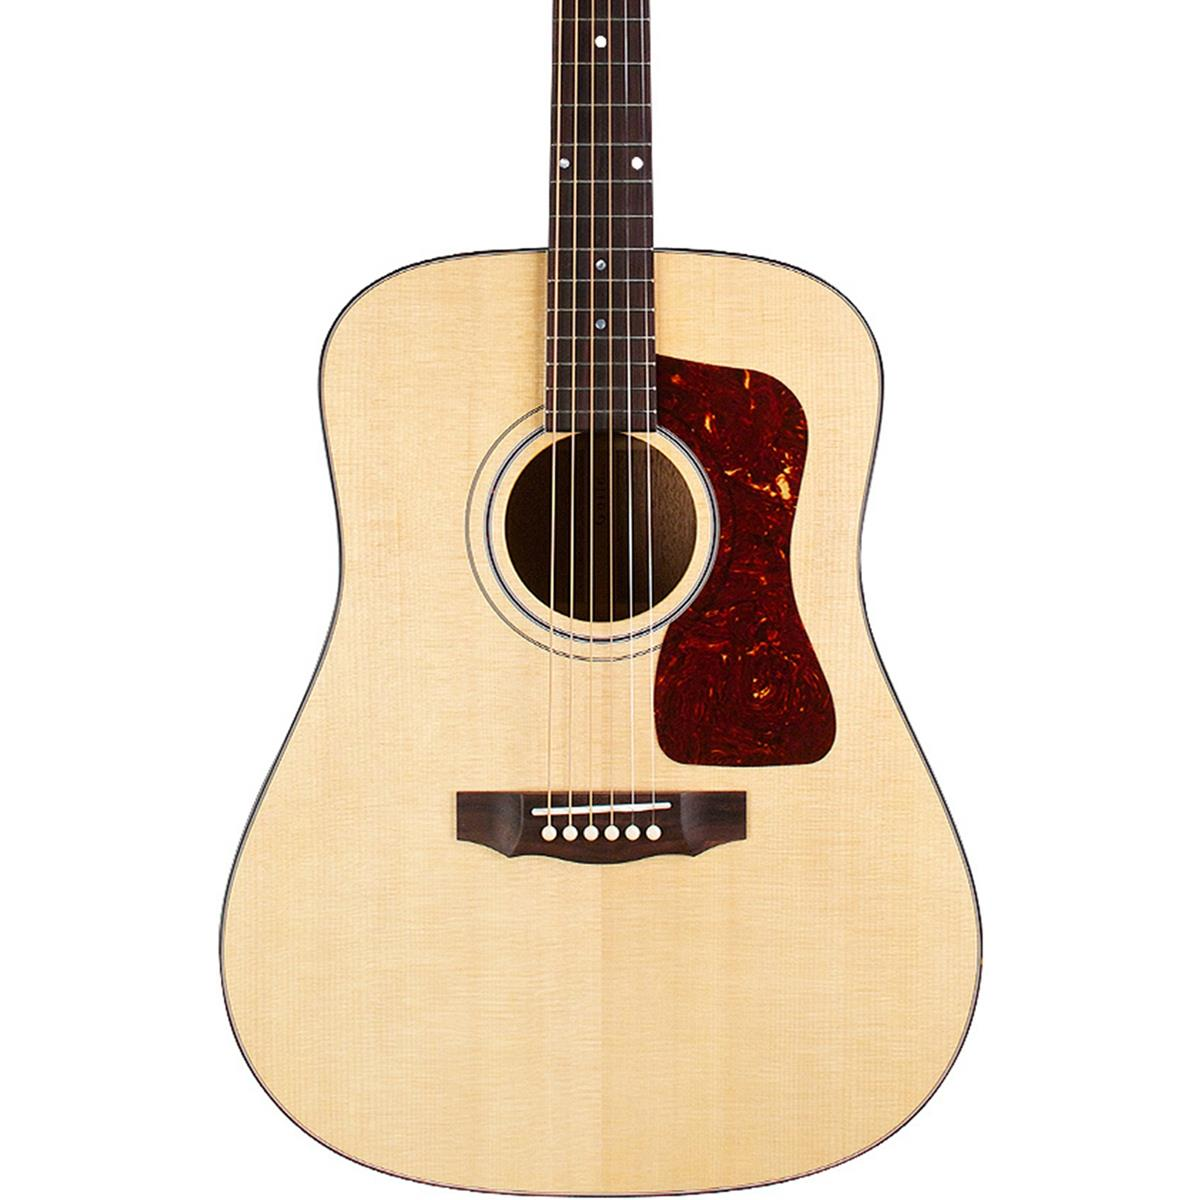 GUILD USA D-40 TRADITIONAL NAT - 3850440821